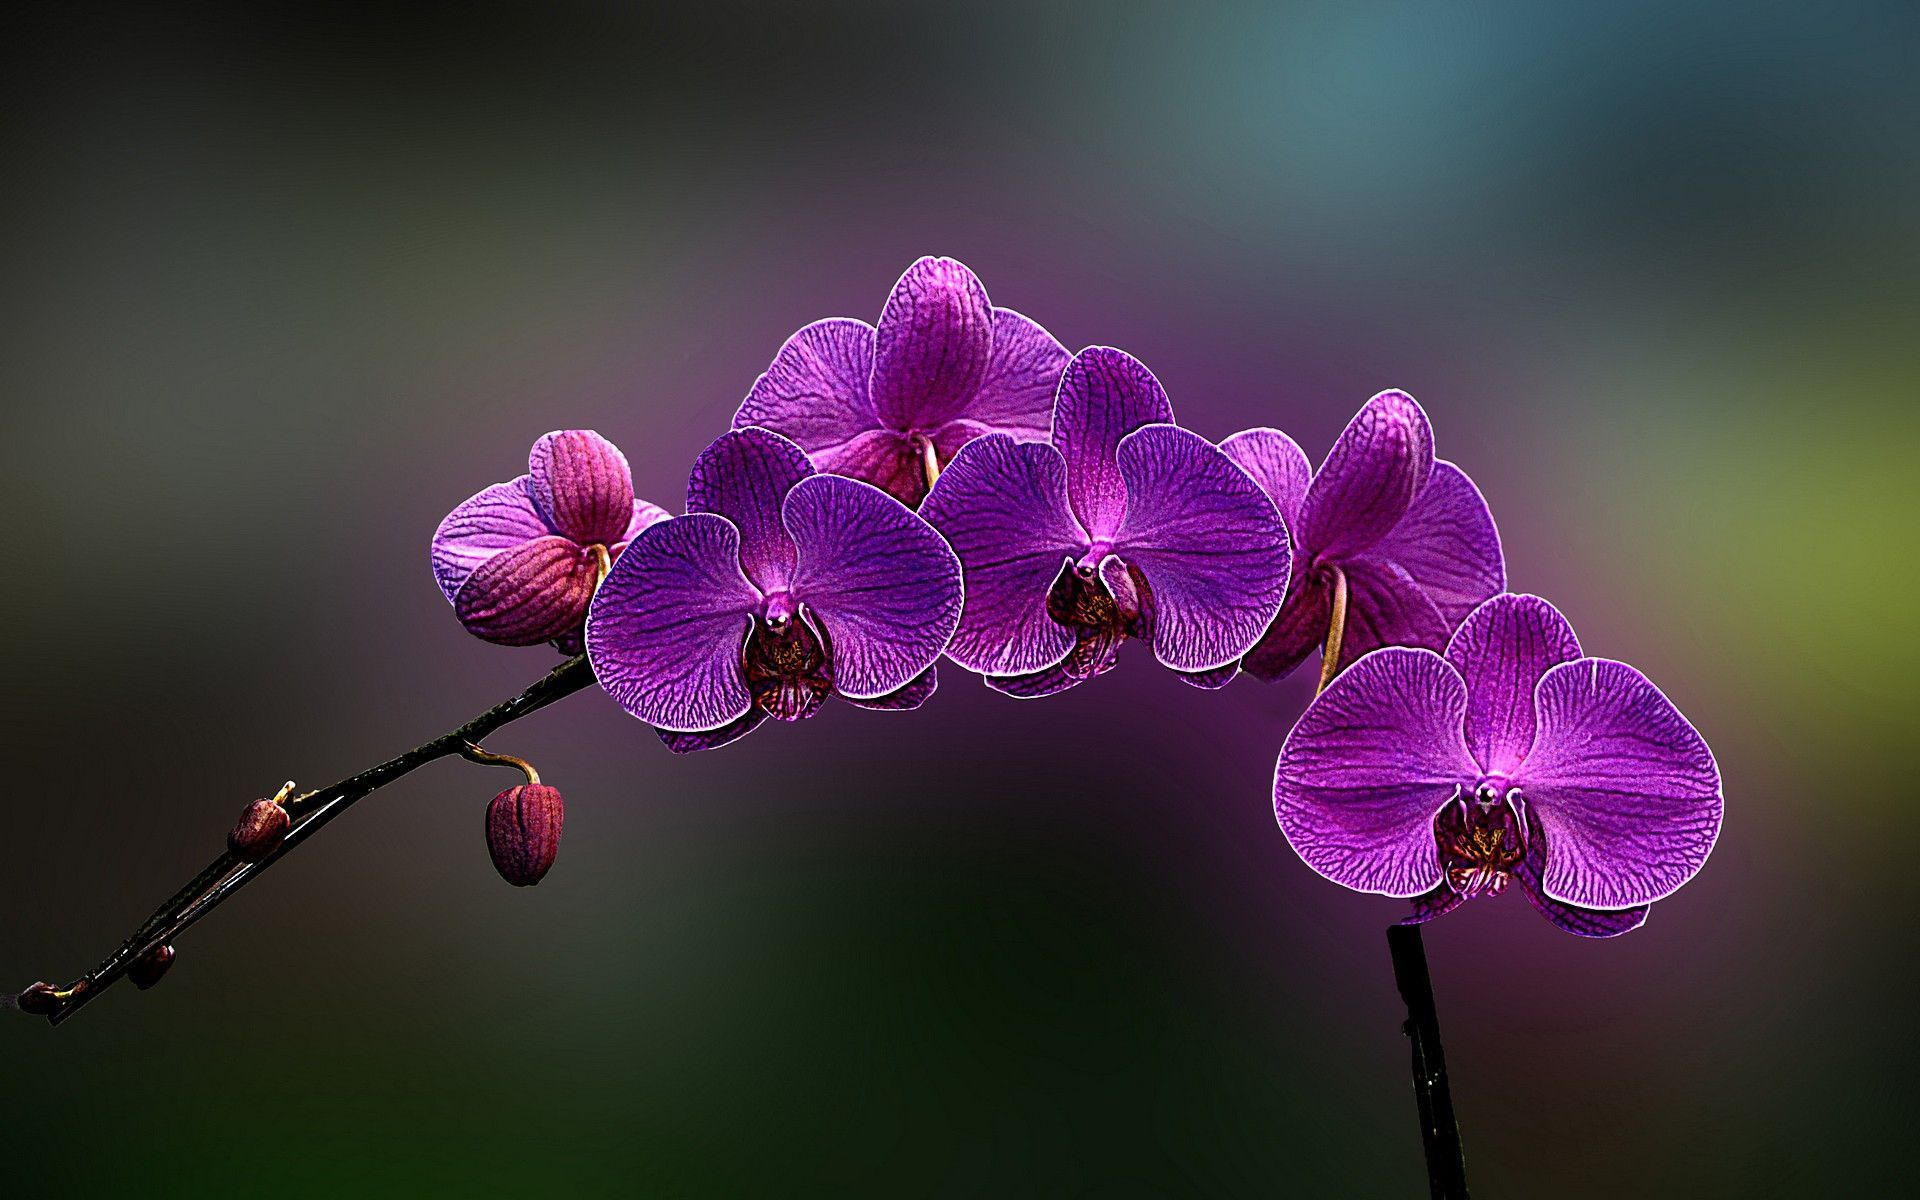 Orchid Wallpapers Full Hd Wallpaper Search Orchid Wallpaper Purple Orchids Types Of Purple Flowers